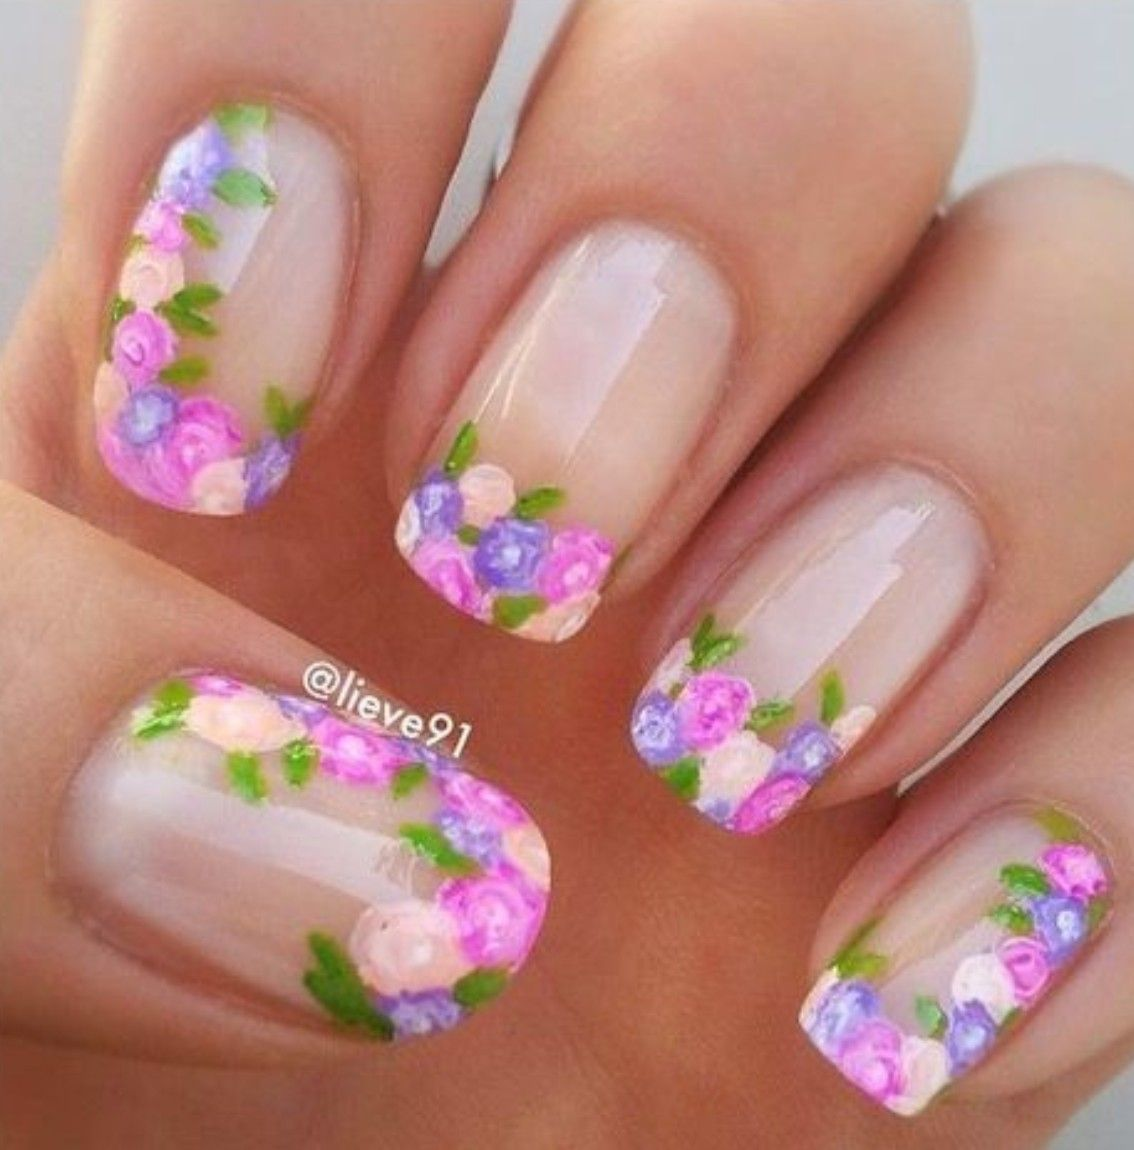 Pin by Marcia Perez on Nail art | Pinterest | Manicure, Spring nails ...